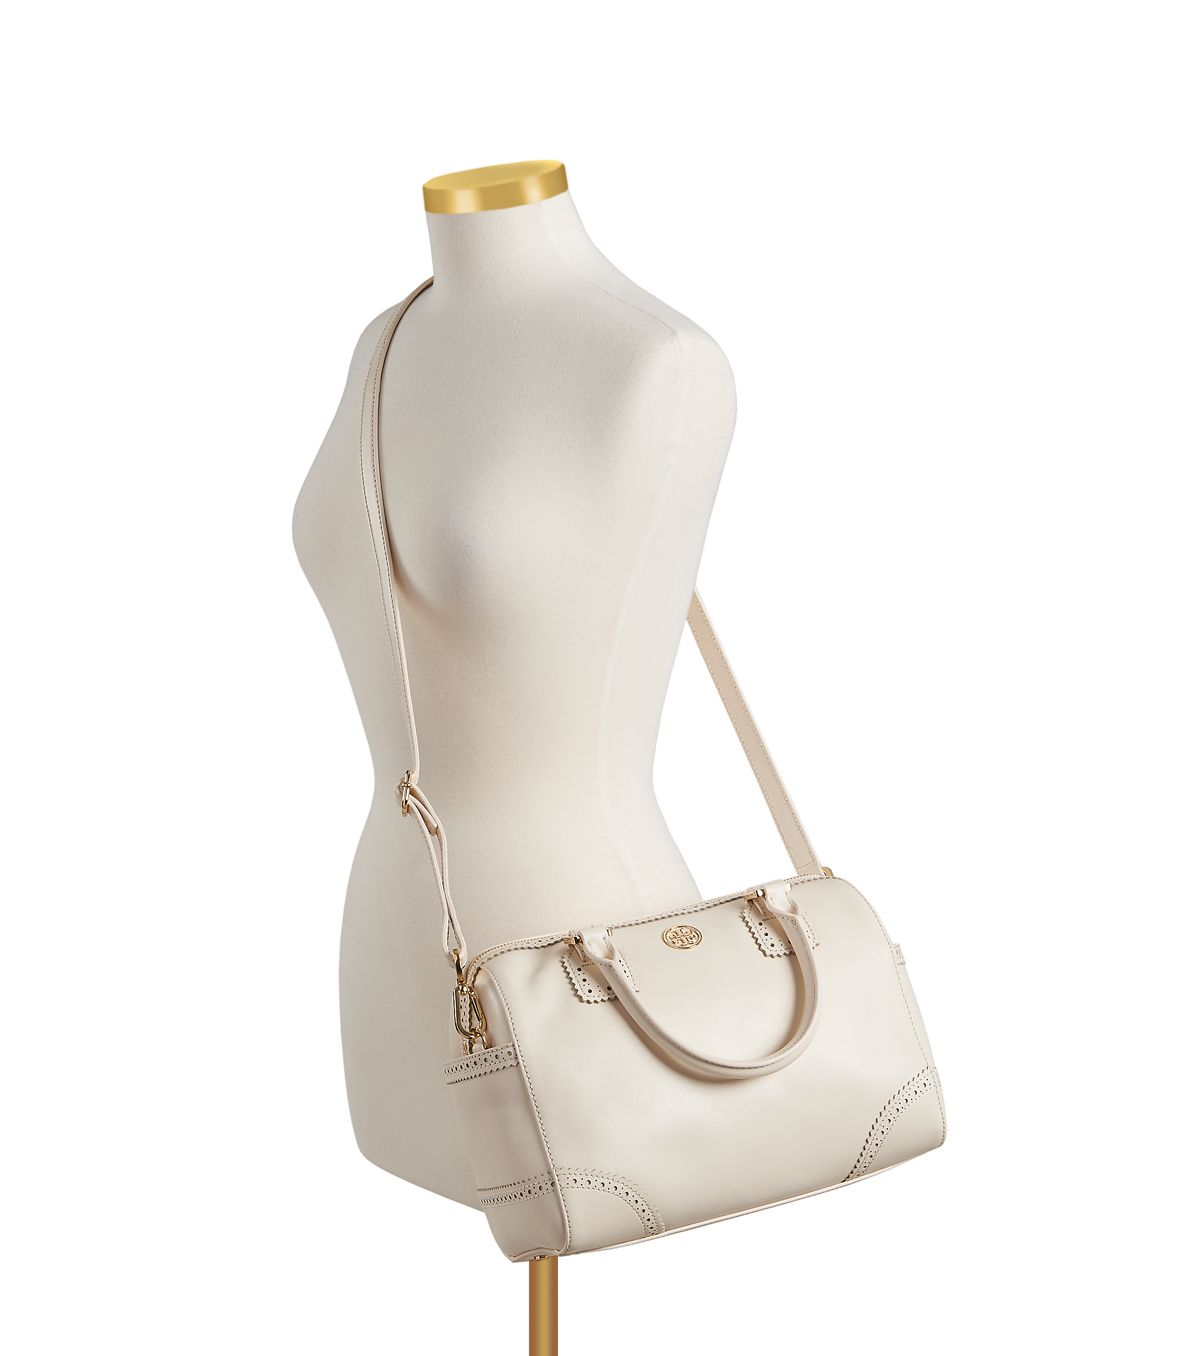 d52c47e4c6cc Lyst - Tory Burch Robinson Spectator Middy Satchel in White